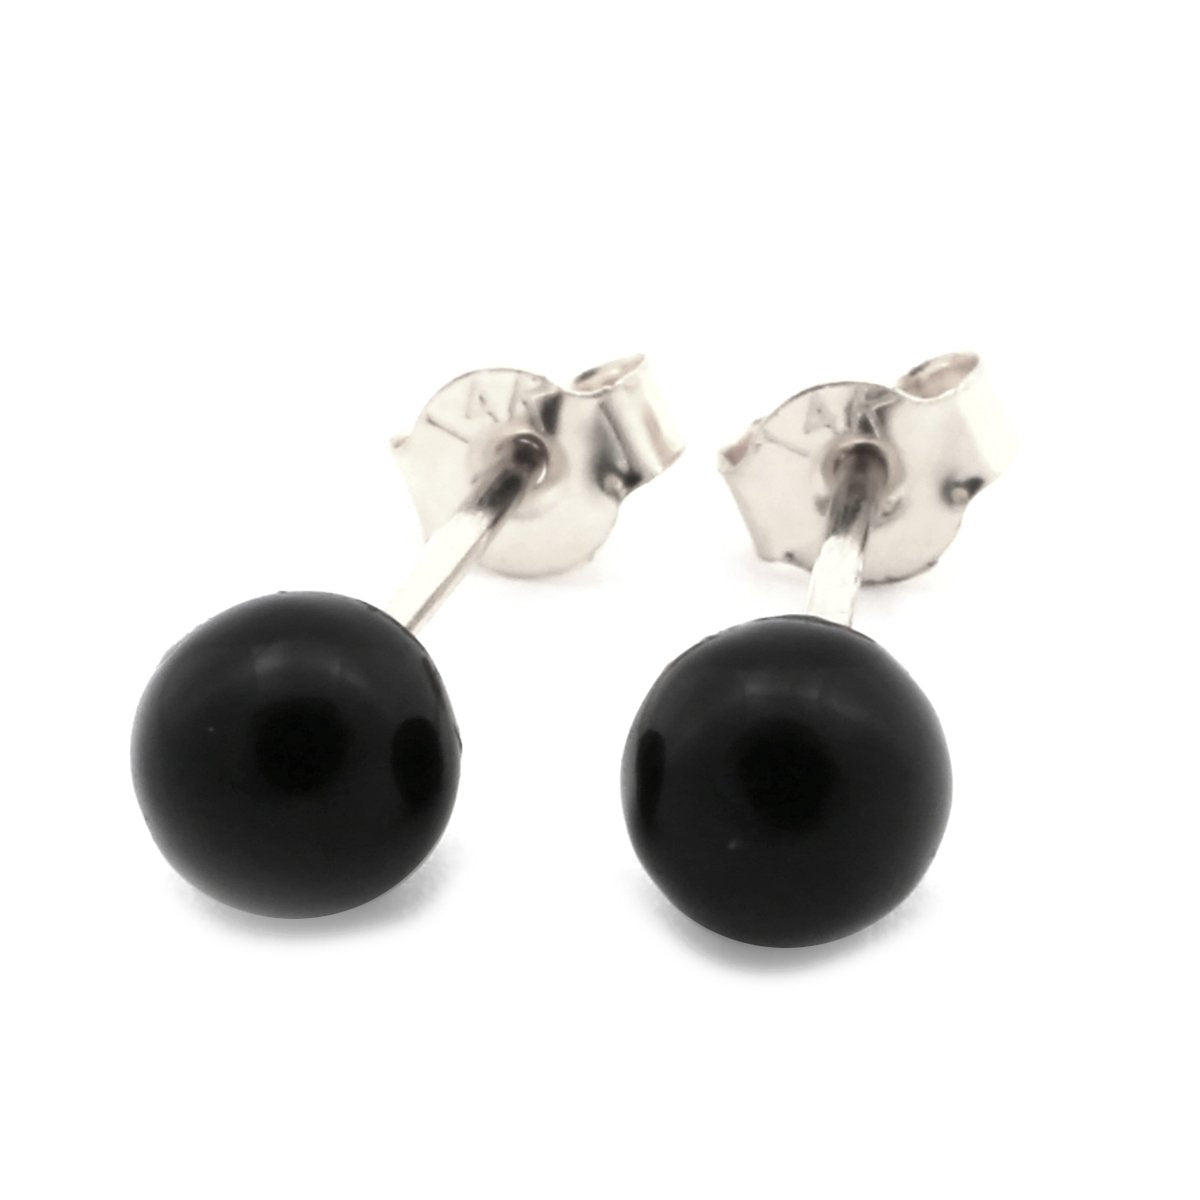 14k Yellow Gold White Gold//Sterling Silver Black Simulated Onyx Ball Earrings